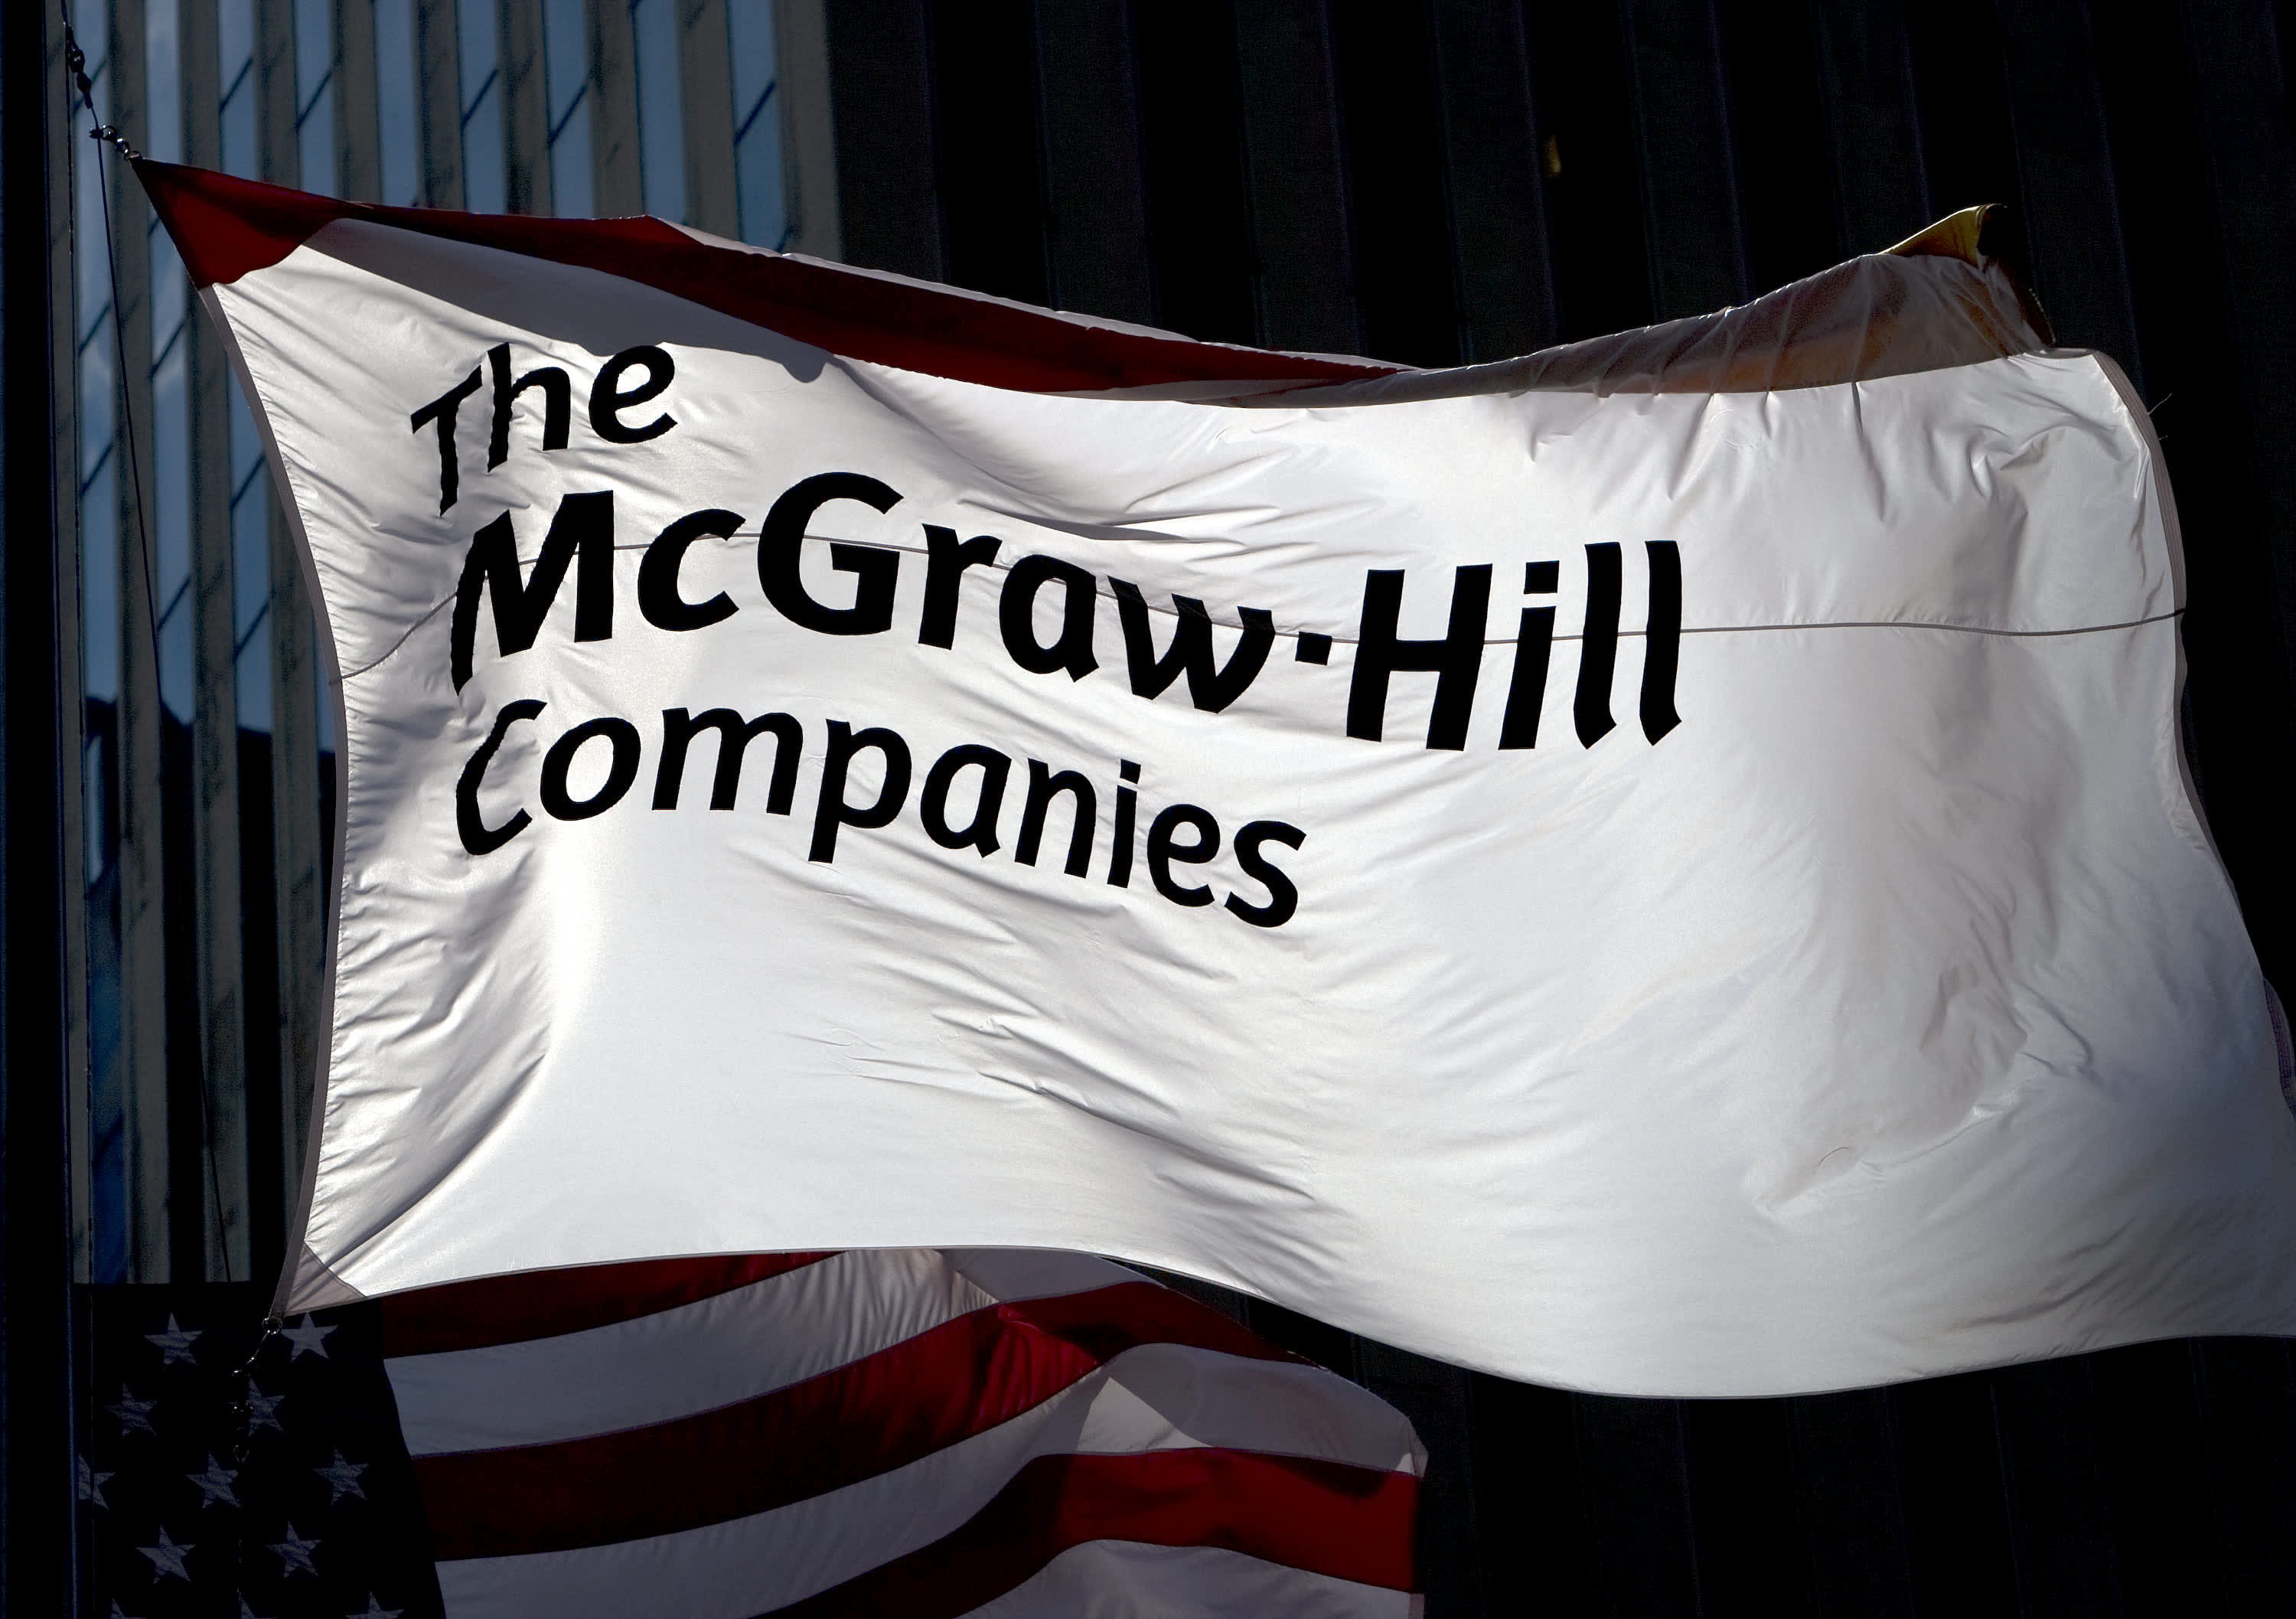 McGraw Hill Companies